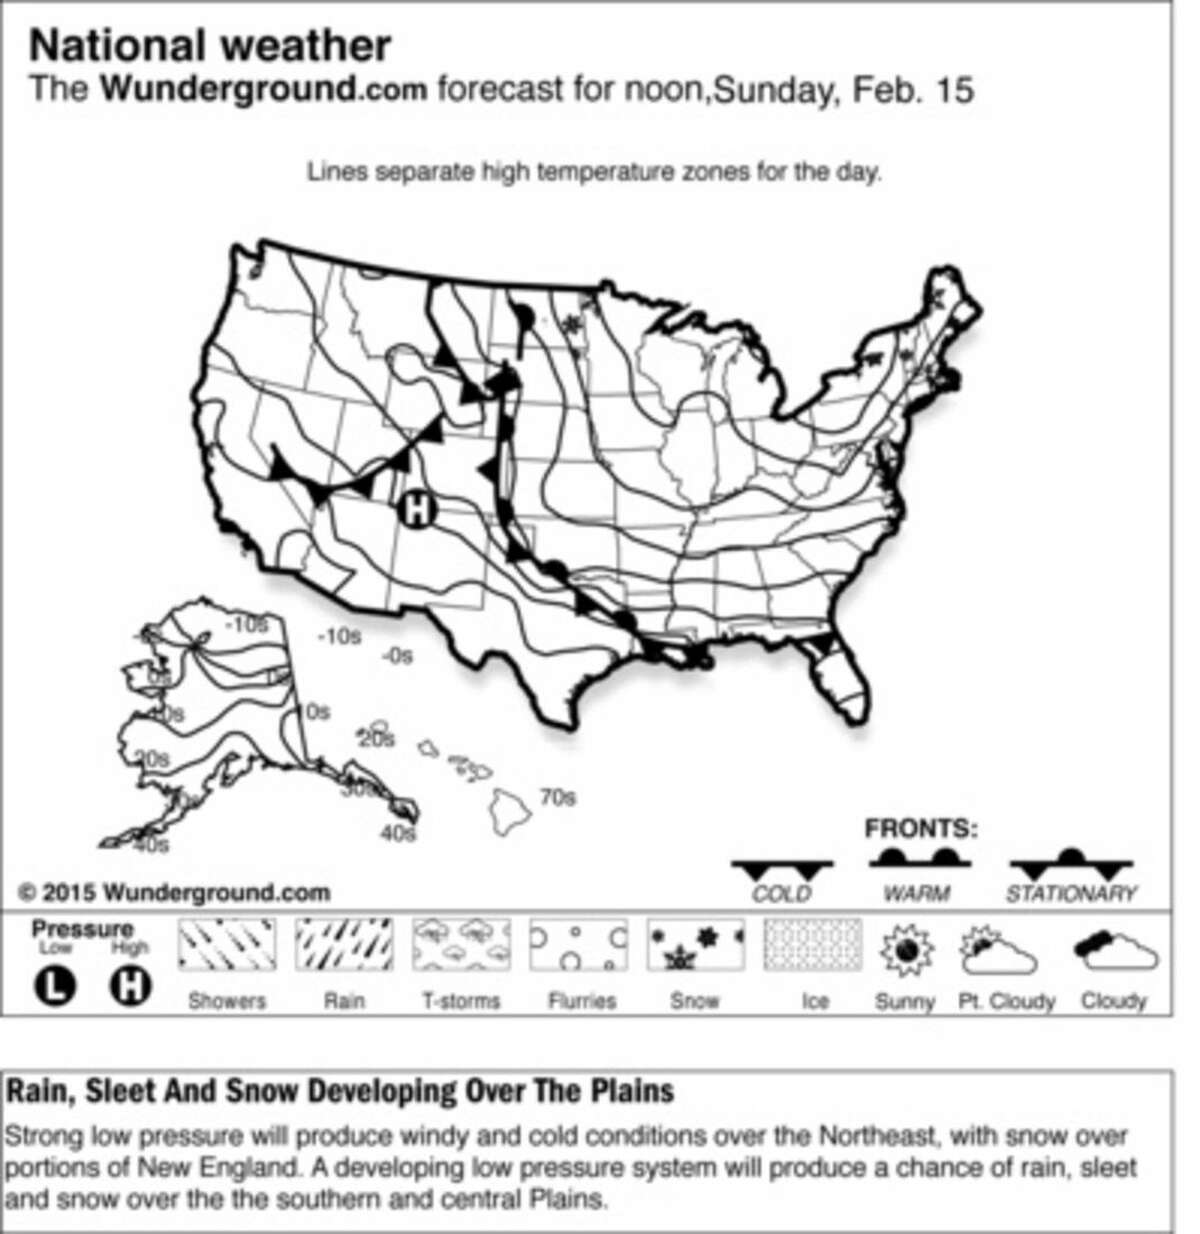 In this weather forecast for Sunday, Feb. 15, 2015, a strong low pressure will produce windy and cold conditions over the Northeast, with snow over portions of New England. A developing low pressure system will produce a chance of rain, sleet and snow over the the southern and central Plains. (AP Photo/Weather Underground)